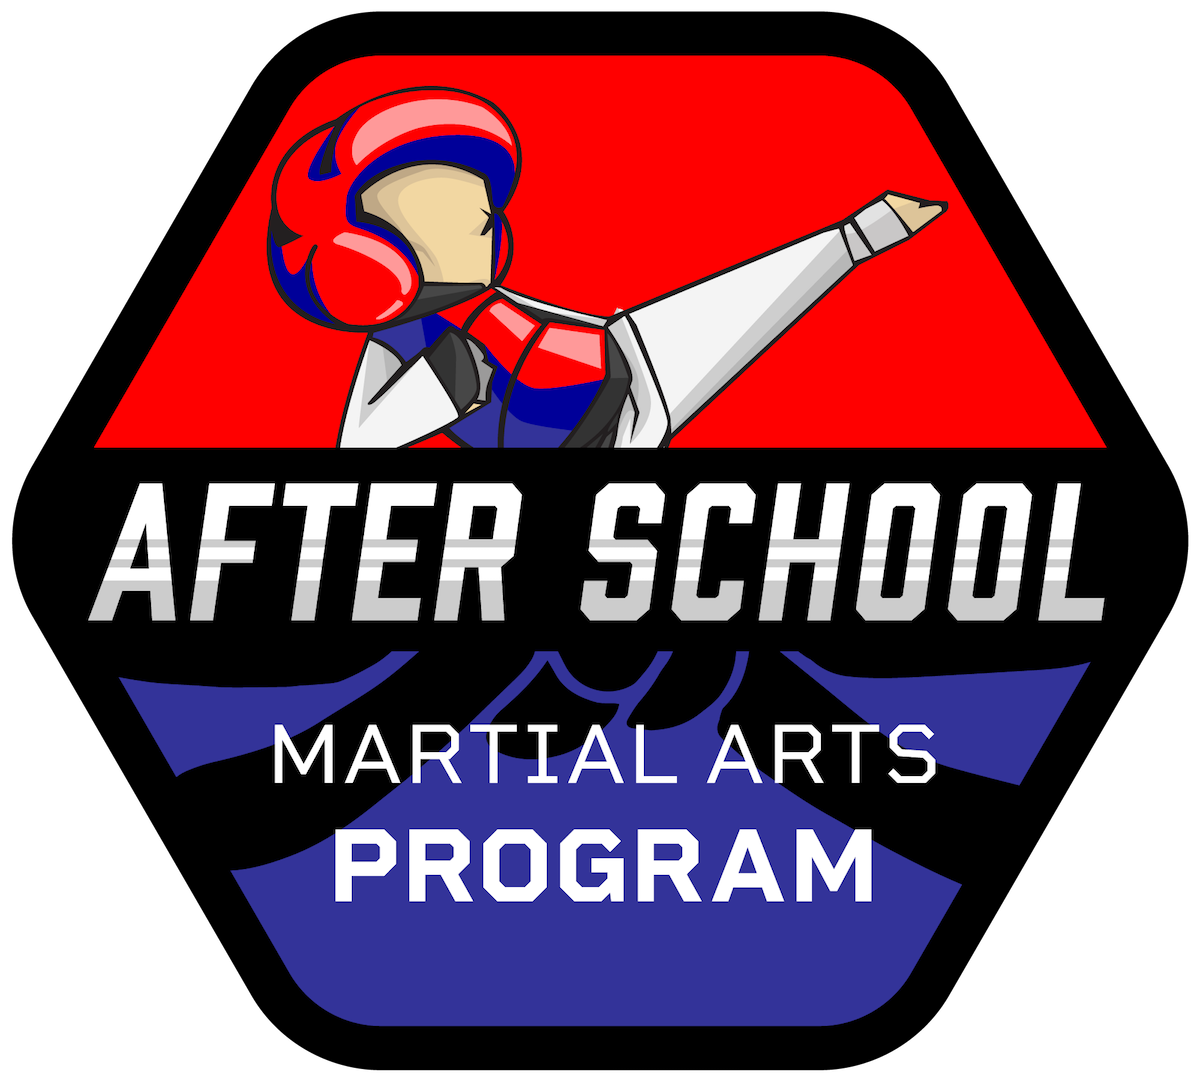 after school martial arts program logo